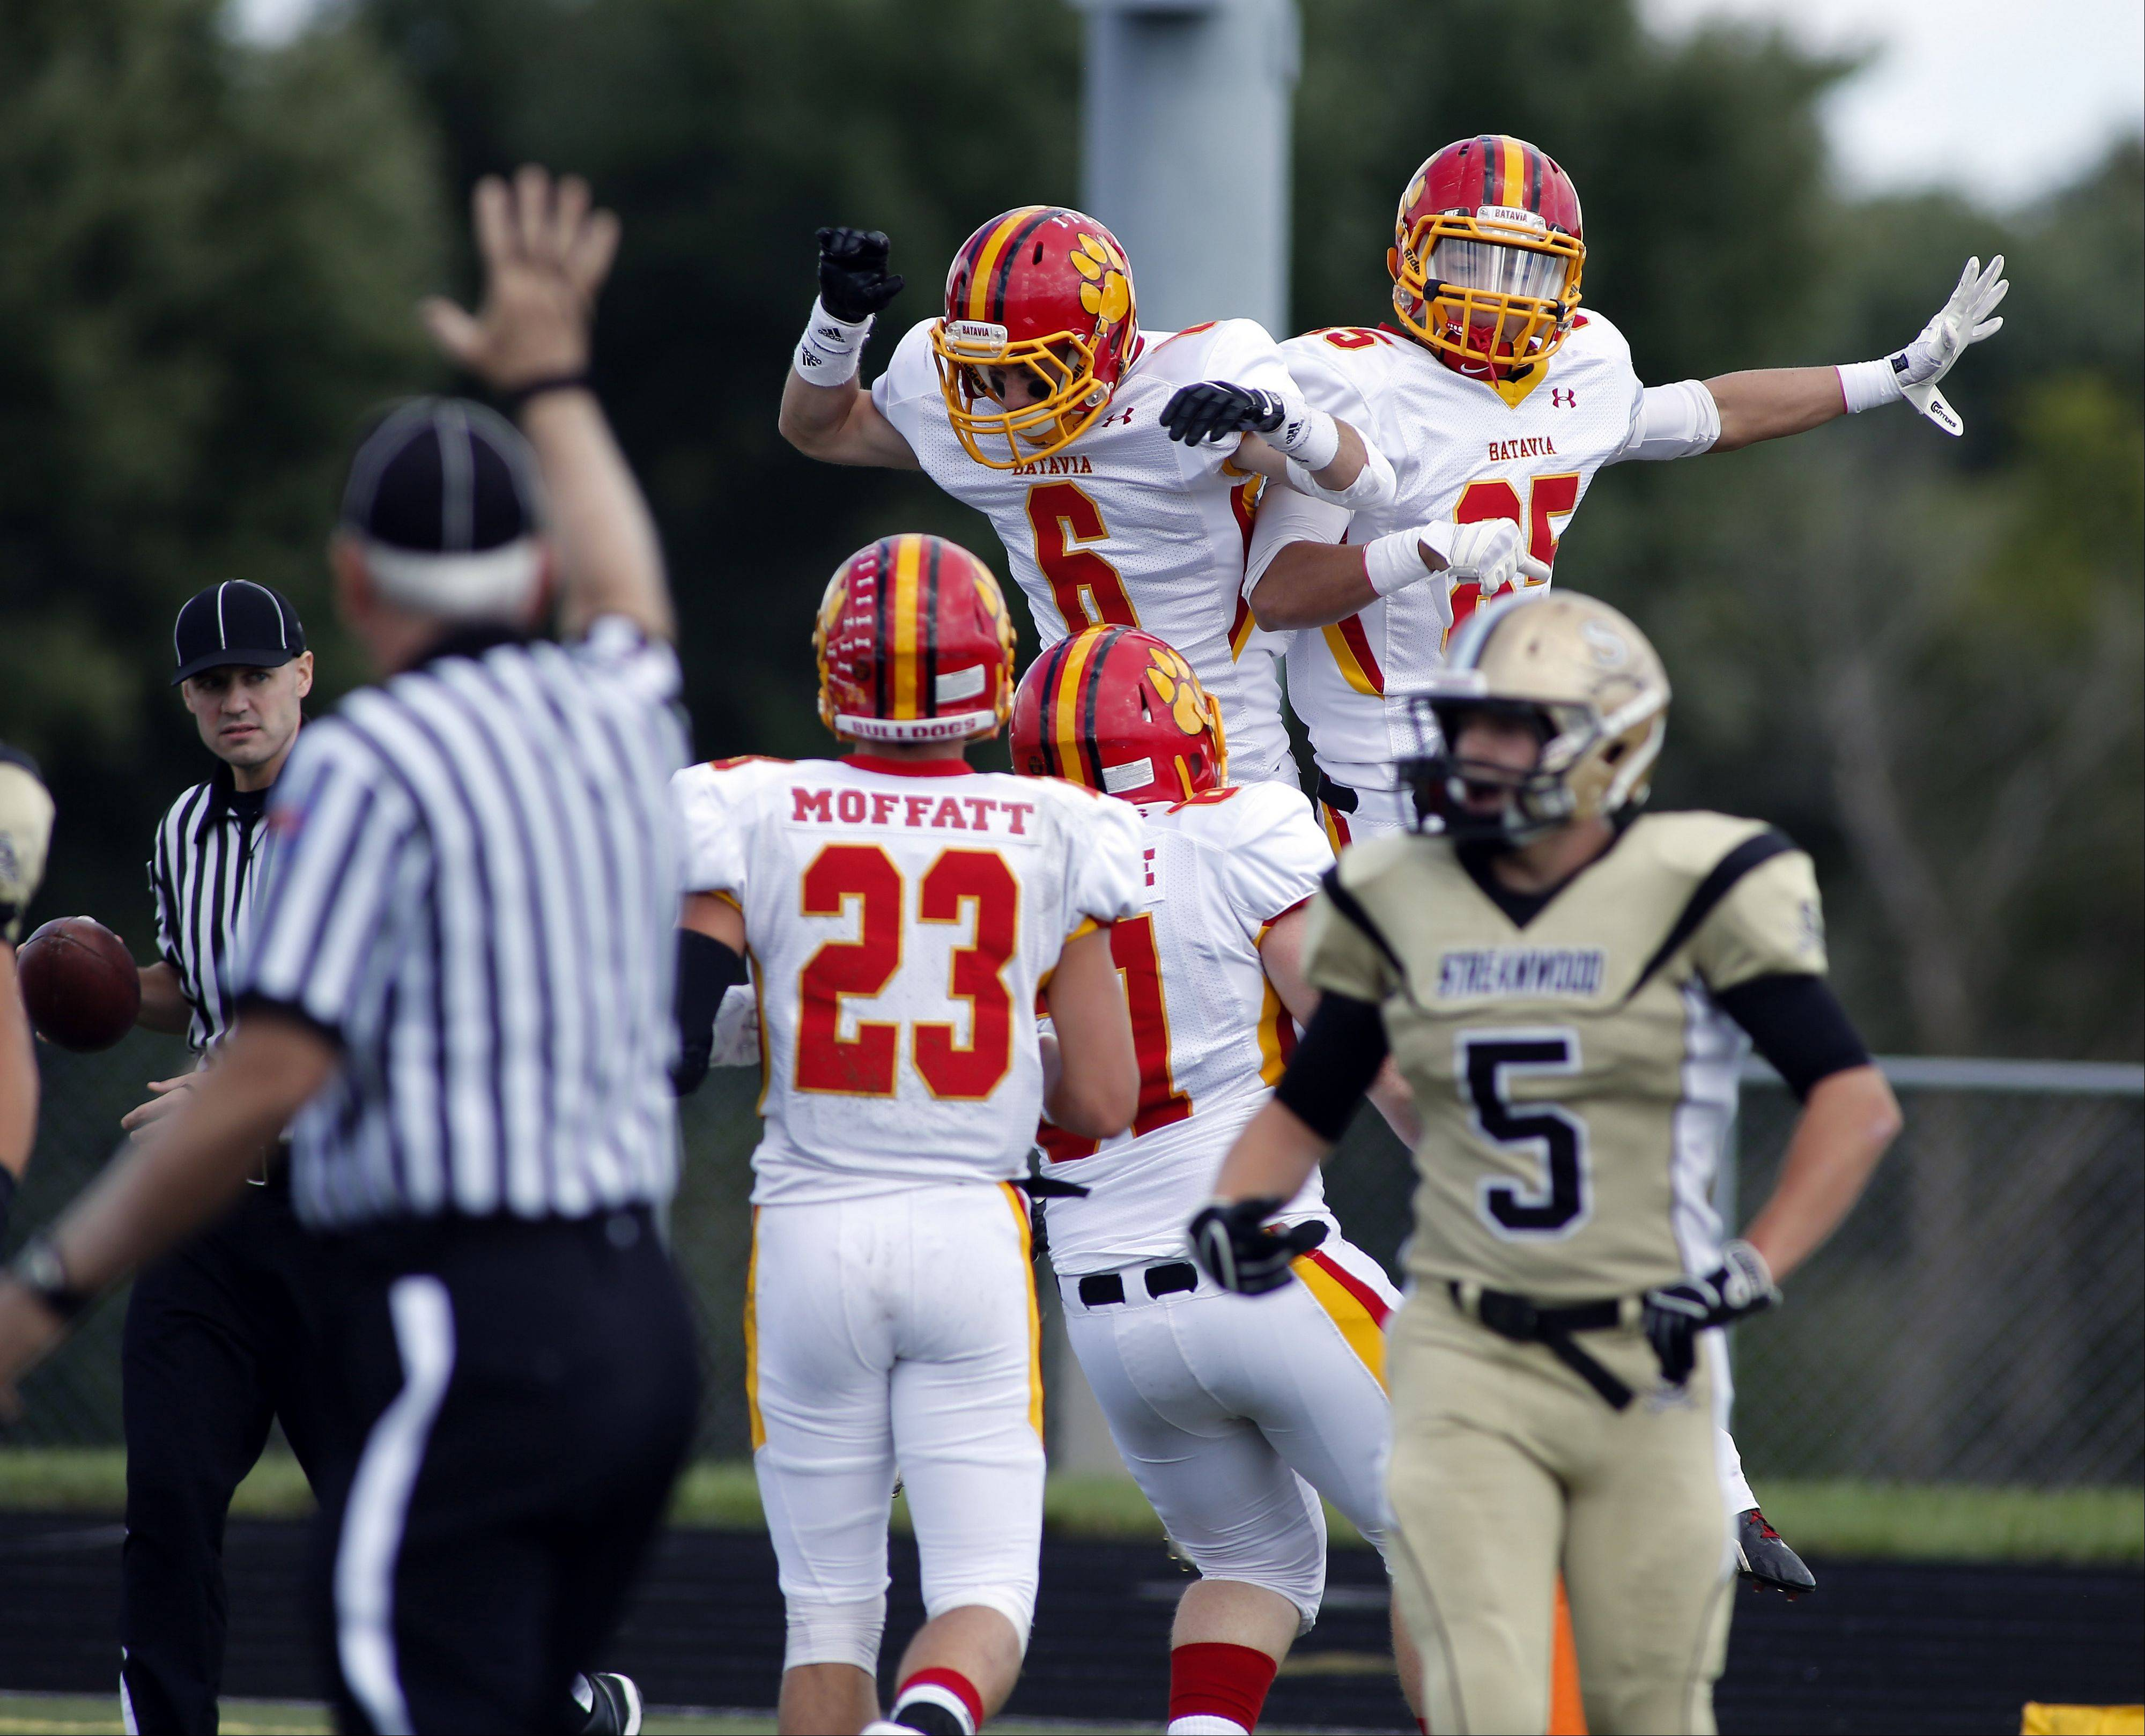 Batavia's Rourke Mullins and Jordan Zwart celebrate a touchdown against Streamwood Saturday at Millennium Field in Streamwood.